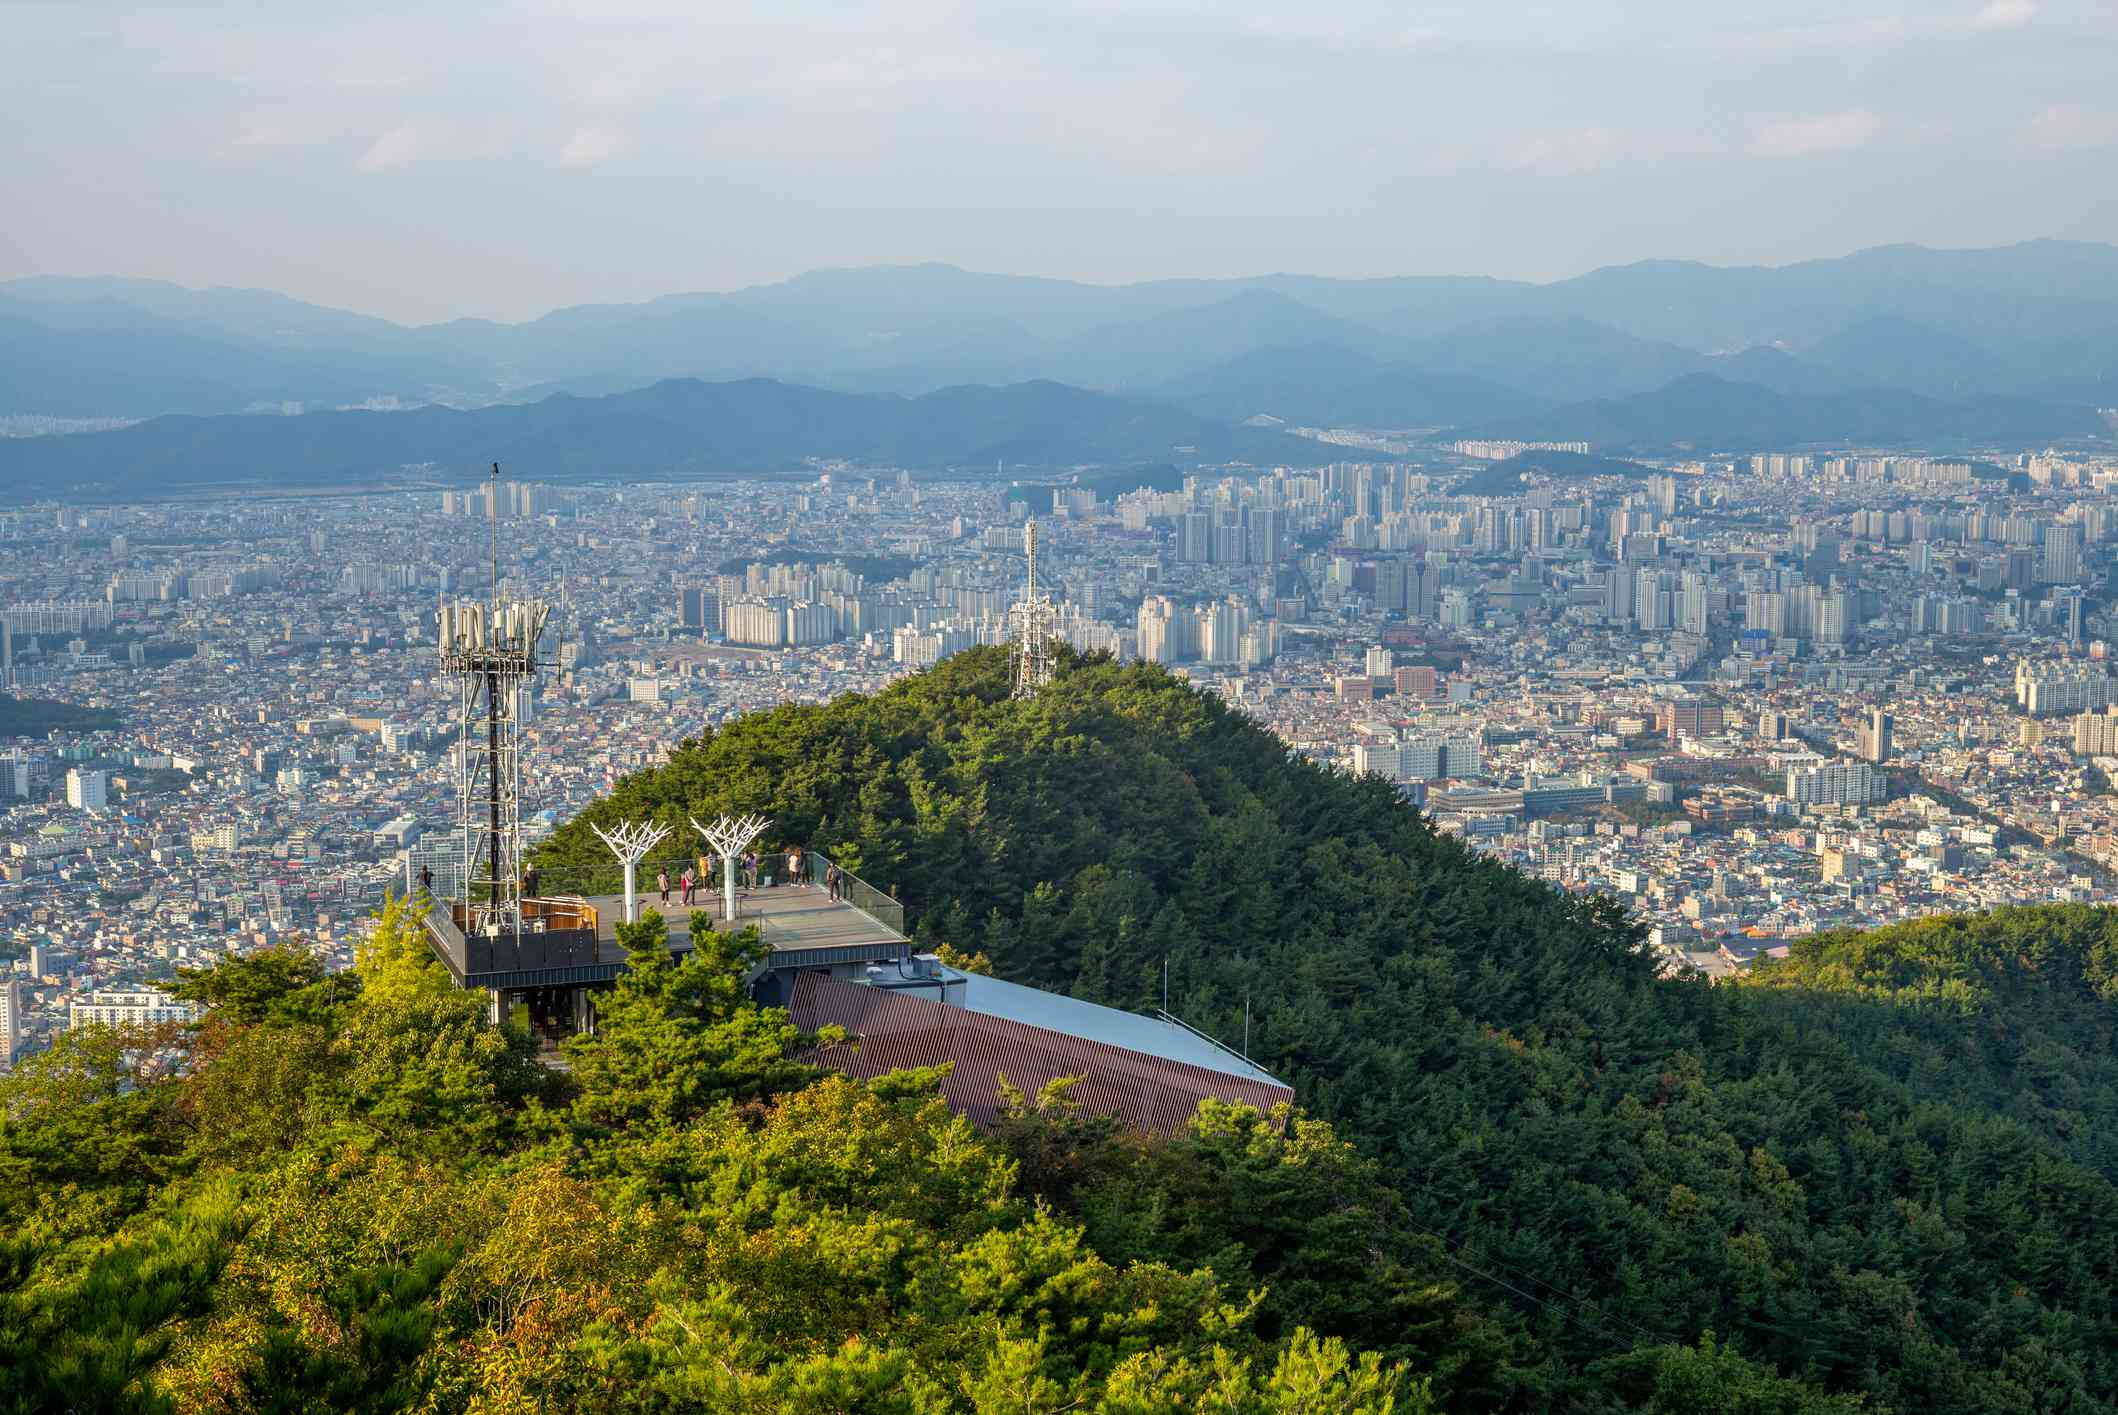 mountain top observation deck on aspan park with a large city below